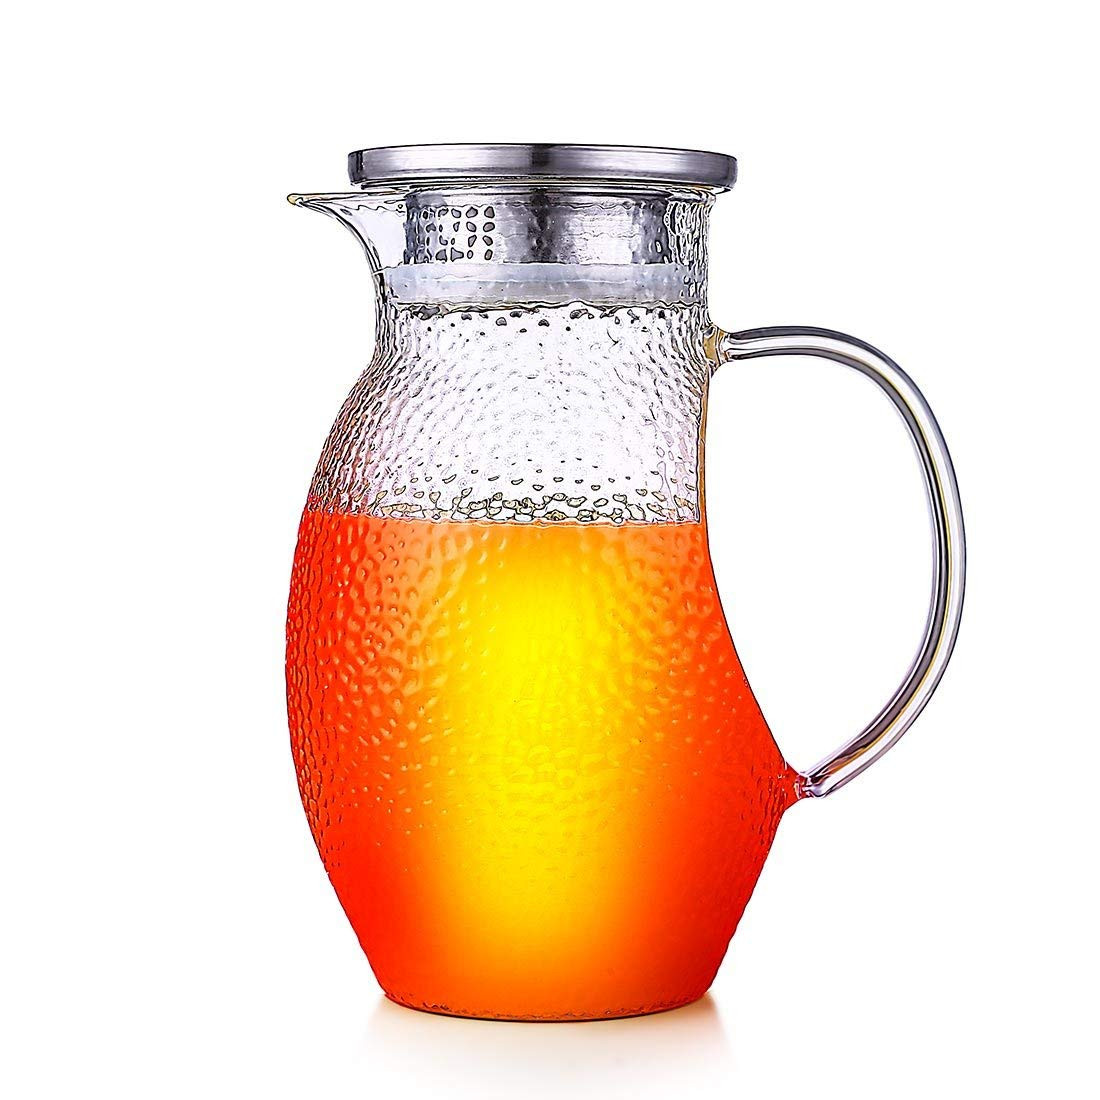 suction cup flower vase of amazon com oneisall 44oz glass pitcher with lid borosilicate in amazon com oneisall 44oz glass pitcher with lid borosilicate glass jug carafe with stainless steel infuser for ice tea juice cold brew cold hot water